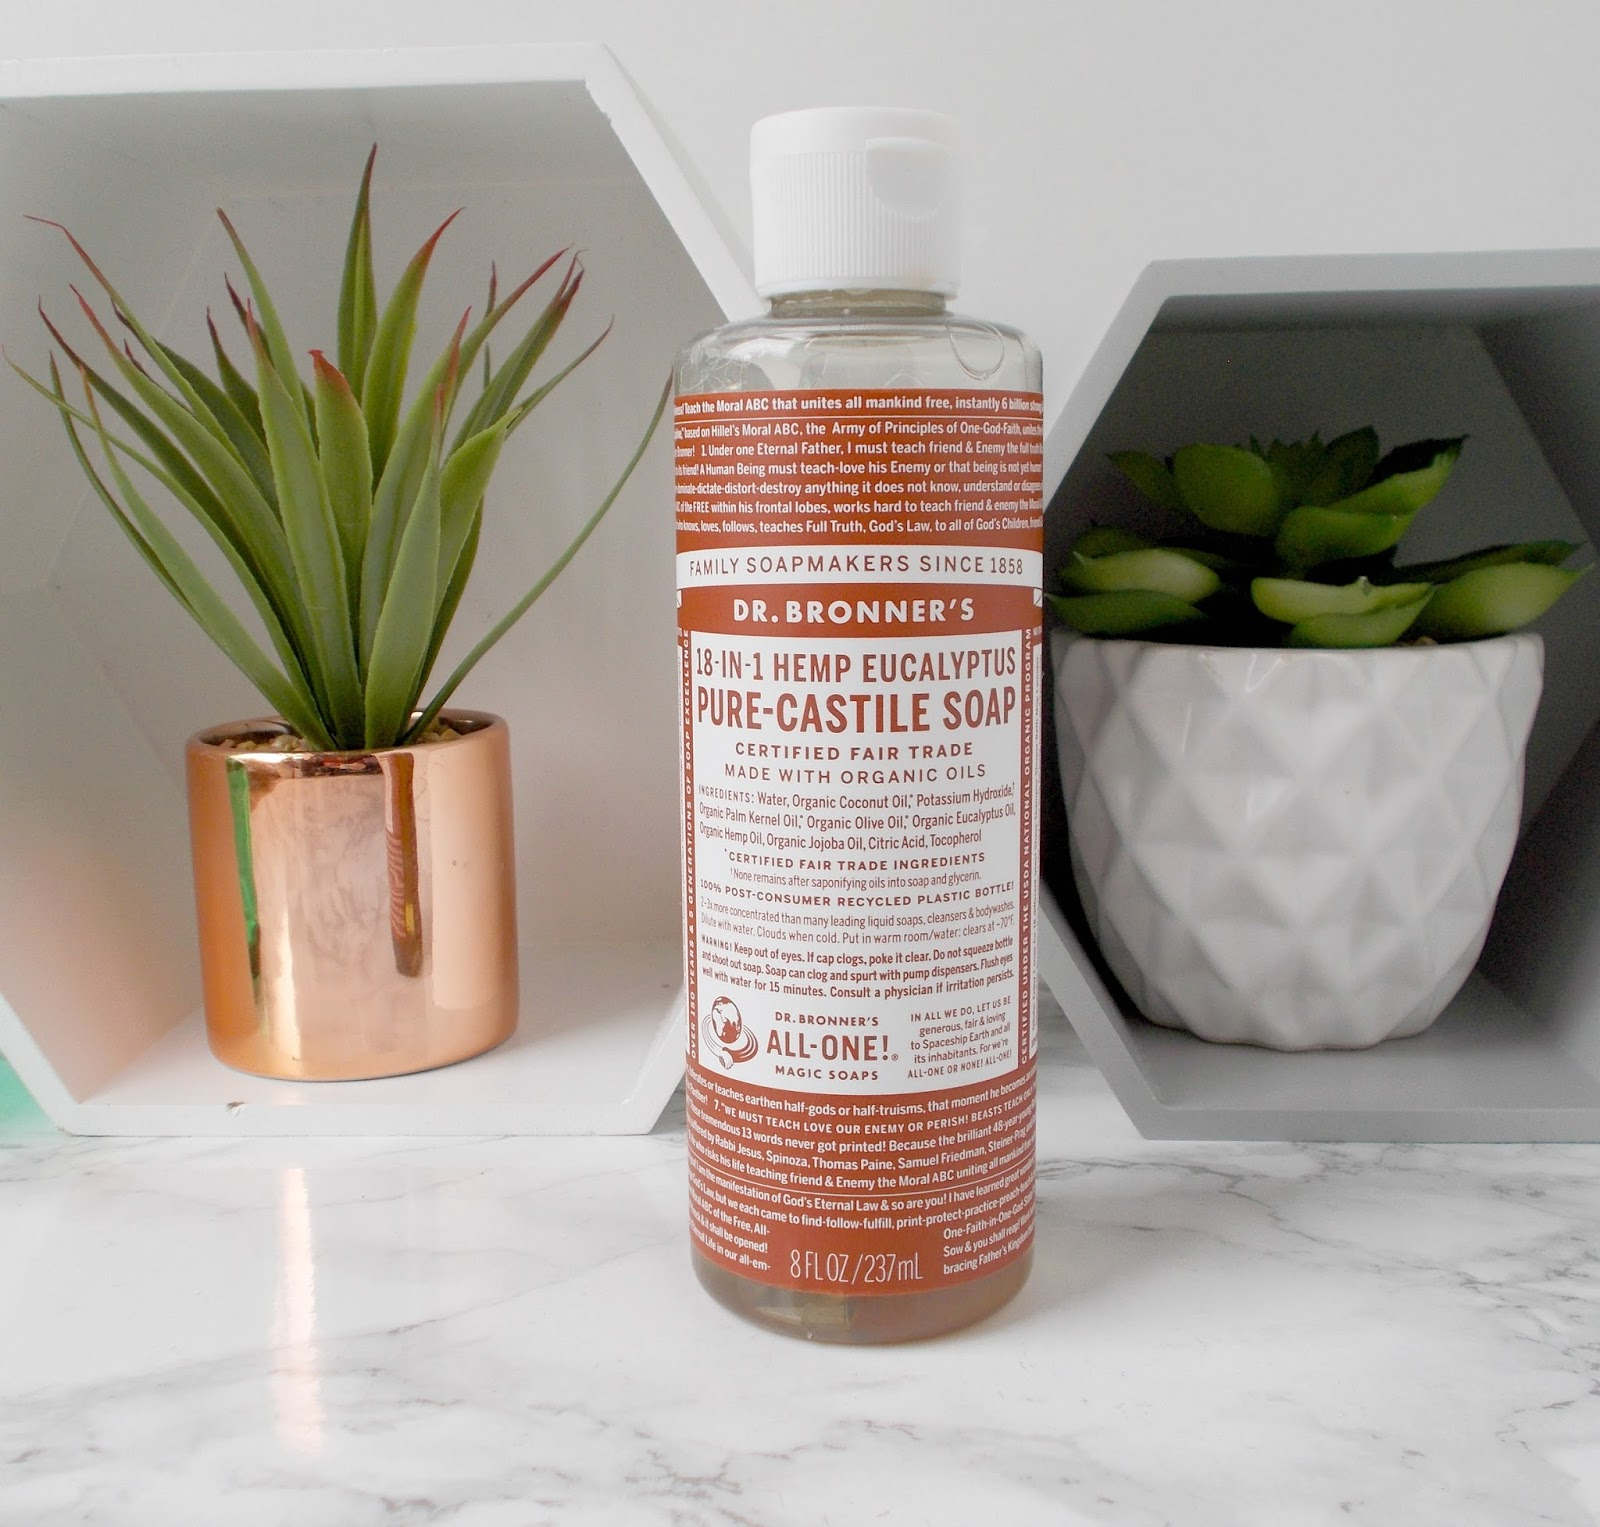 dr. bronner's magic soap review